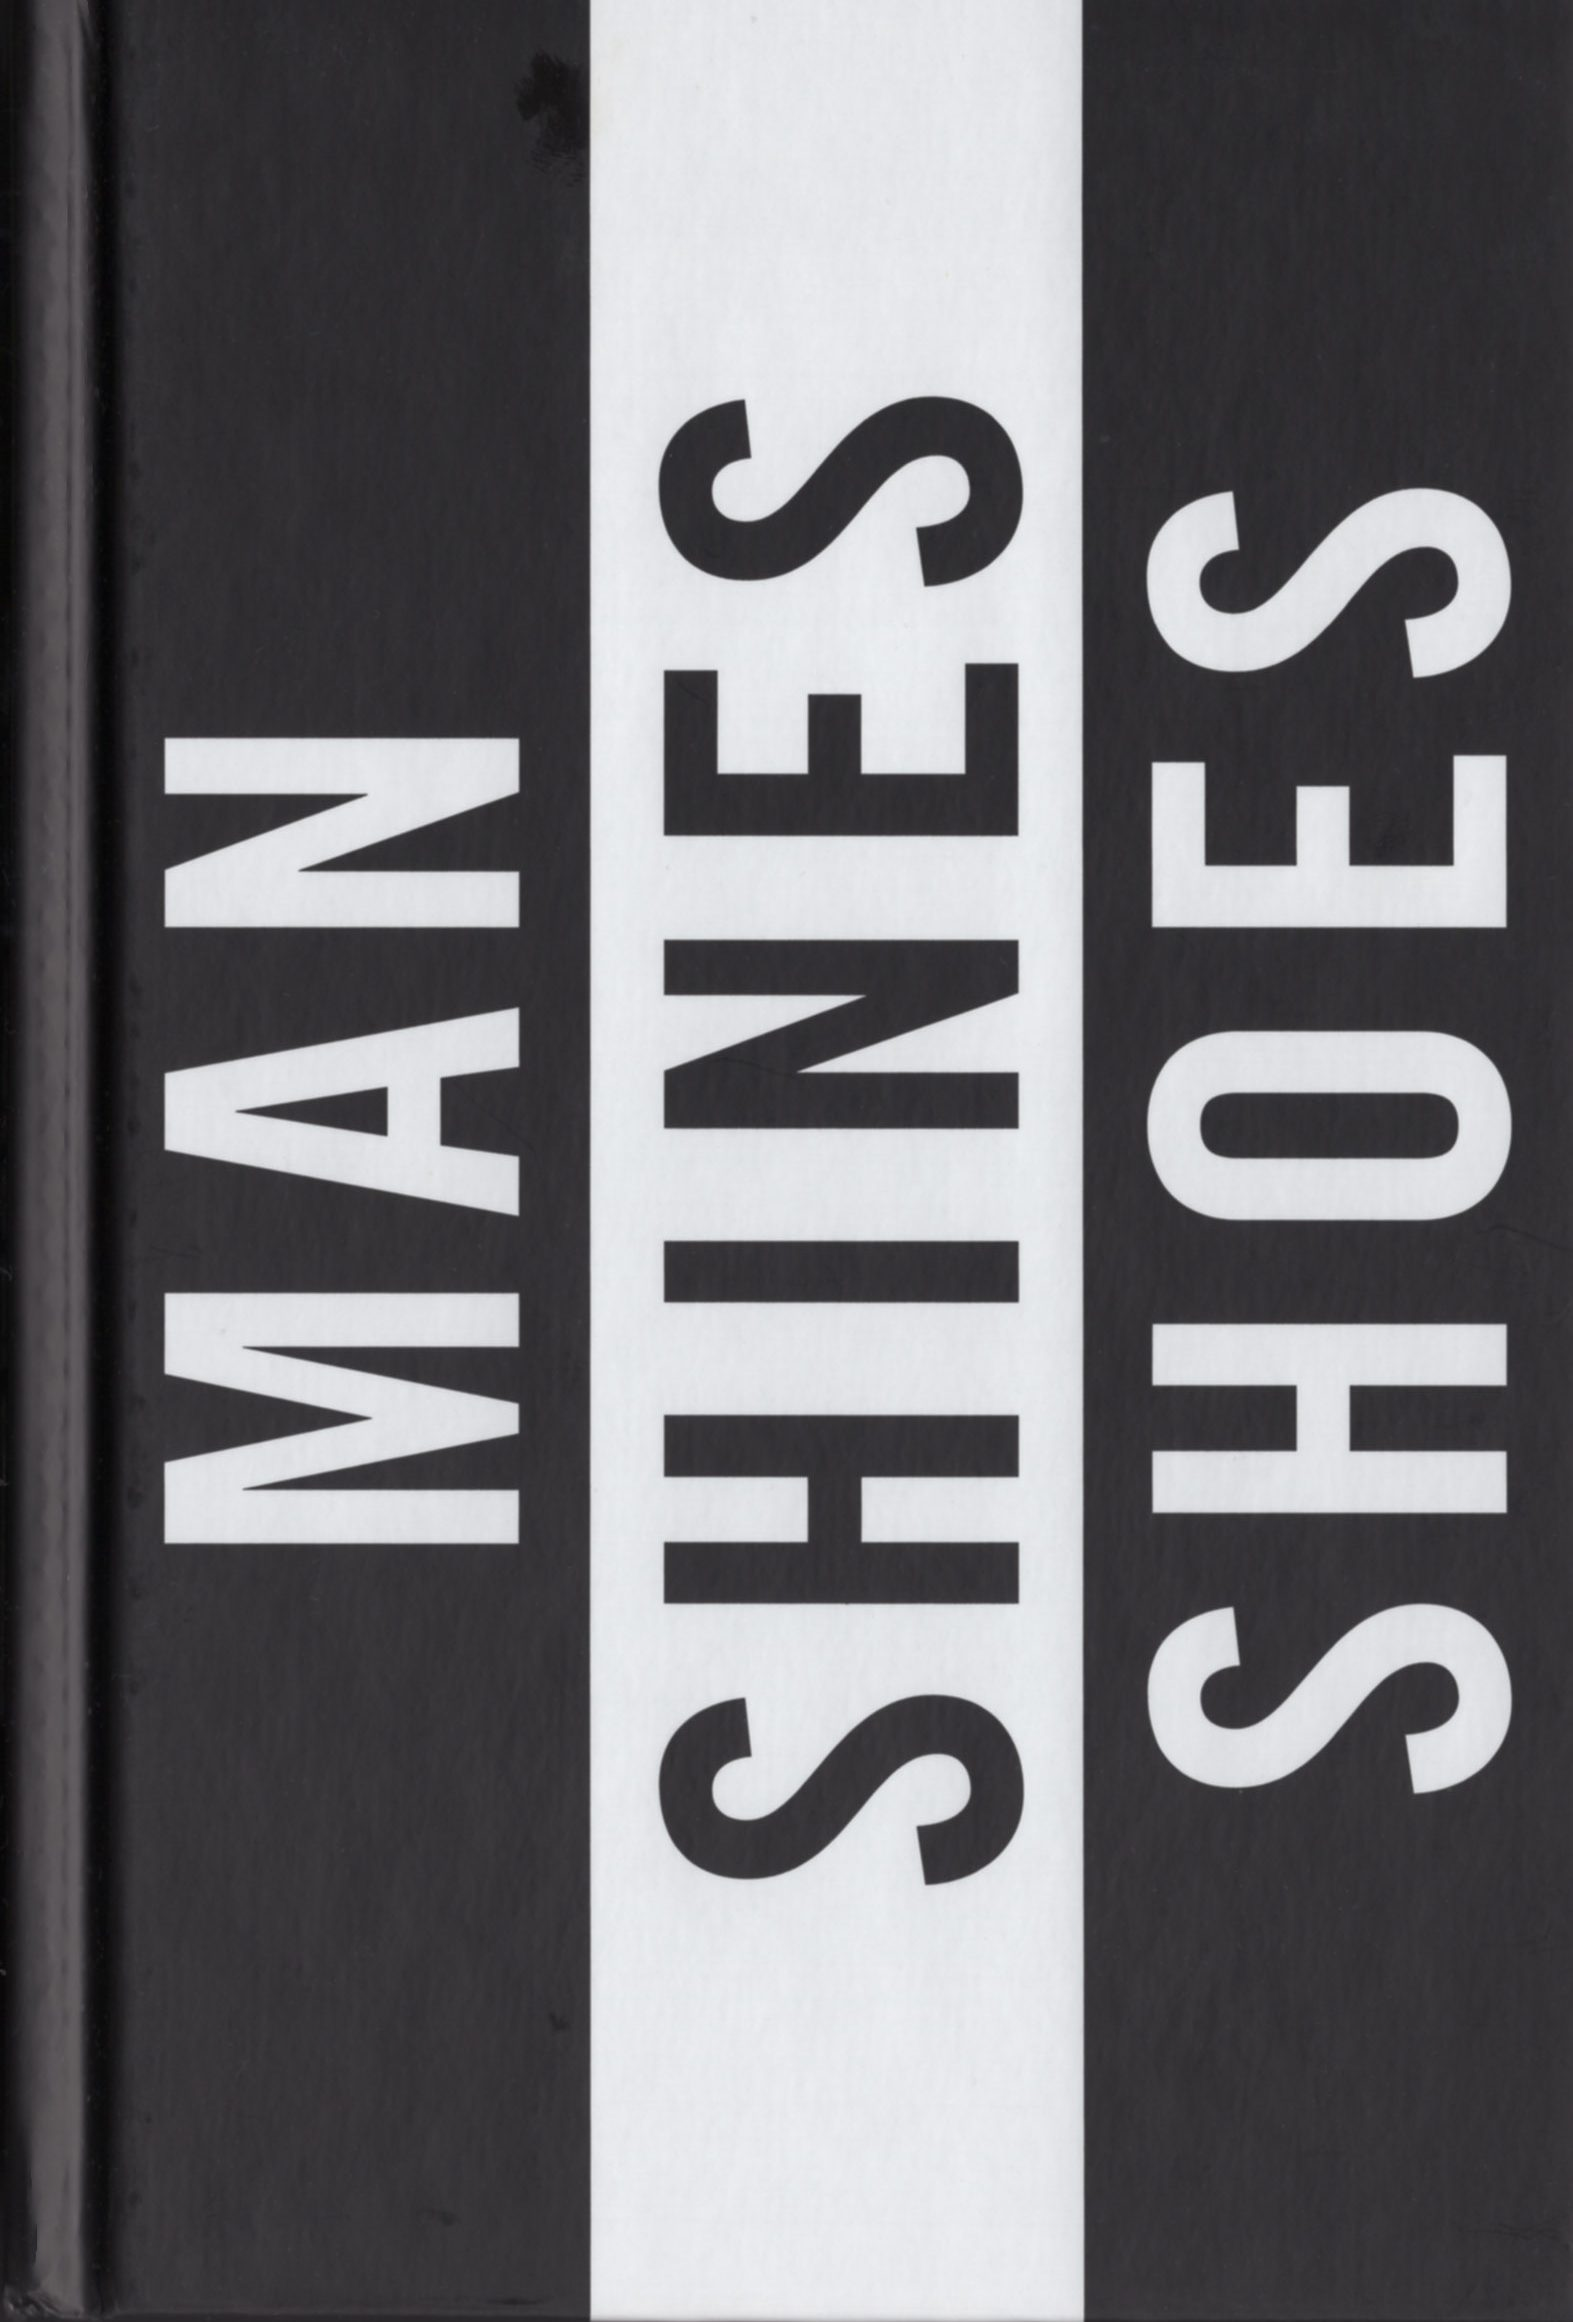 Man Shines Shoes (Hardcover Edition)